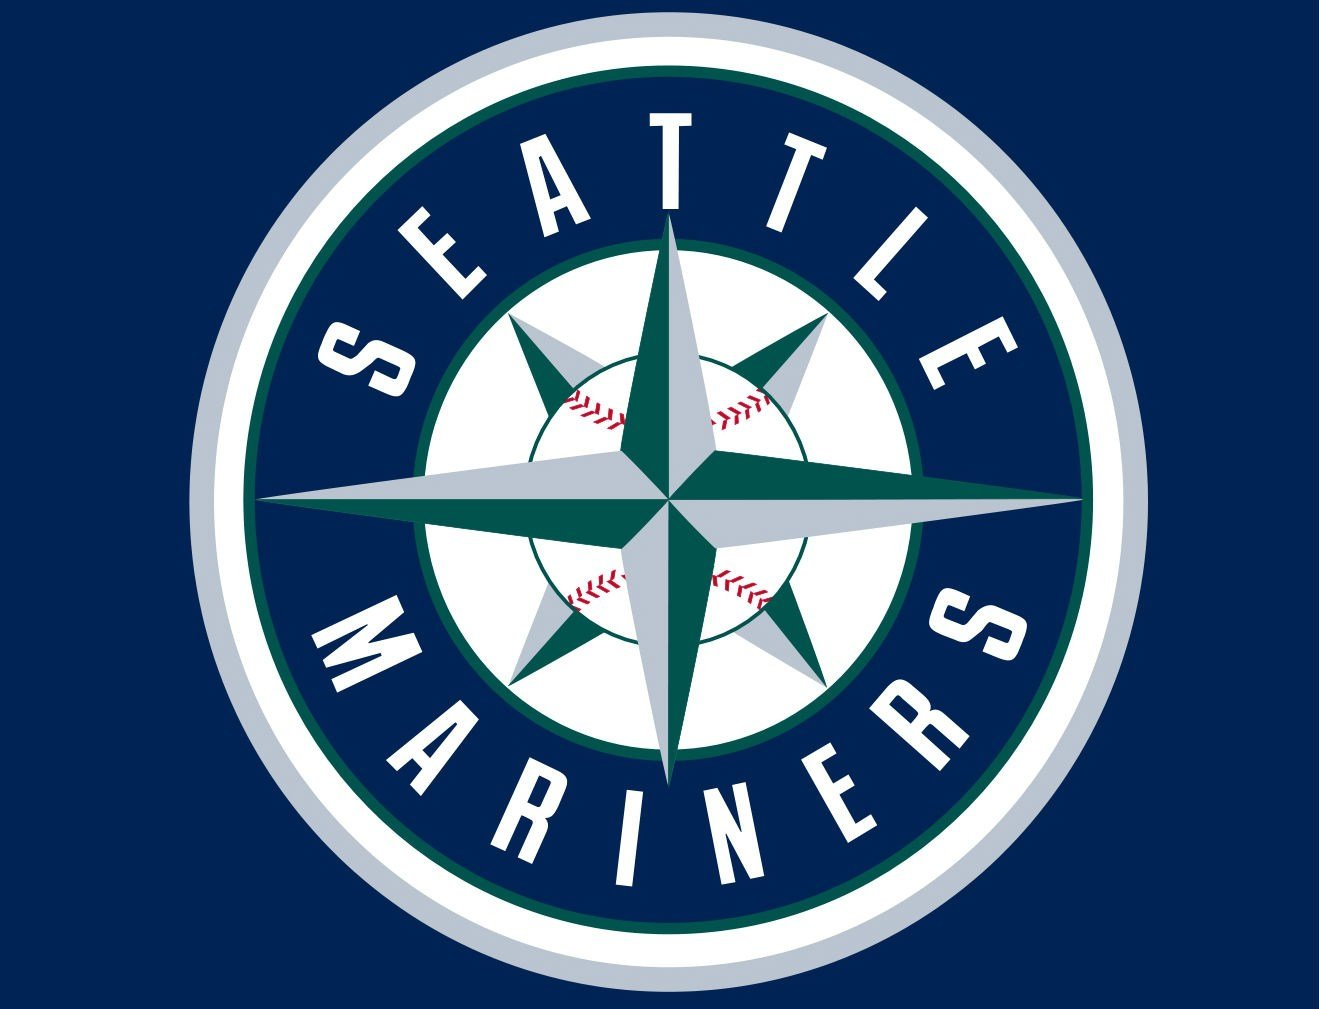 Mariners have now won 5 of their last 6 games